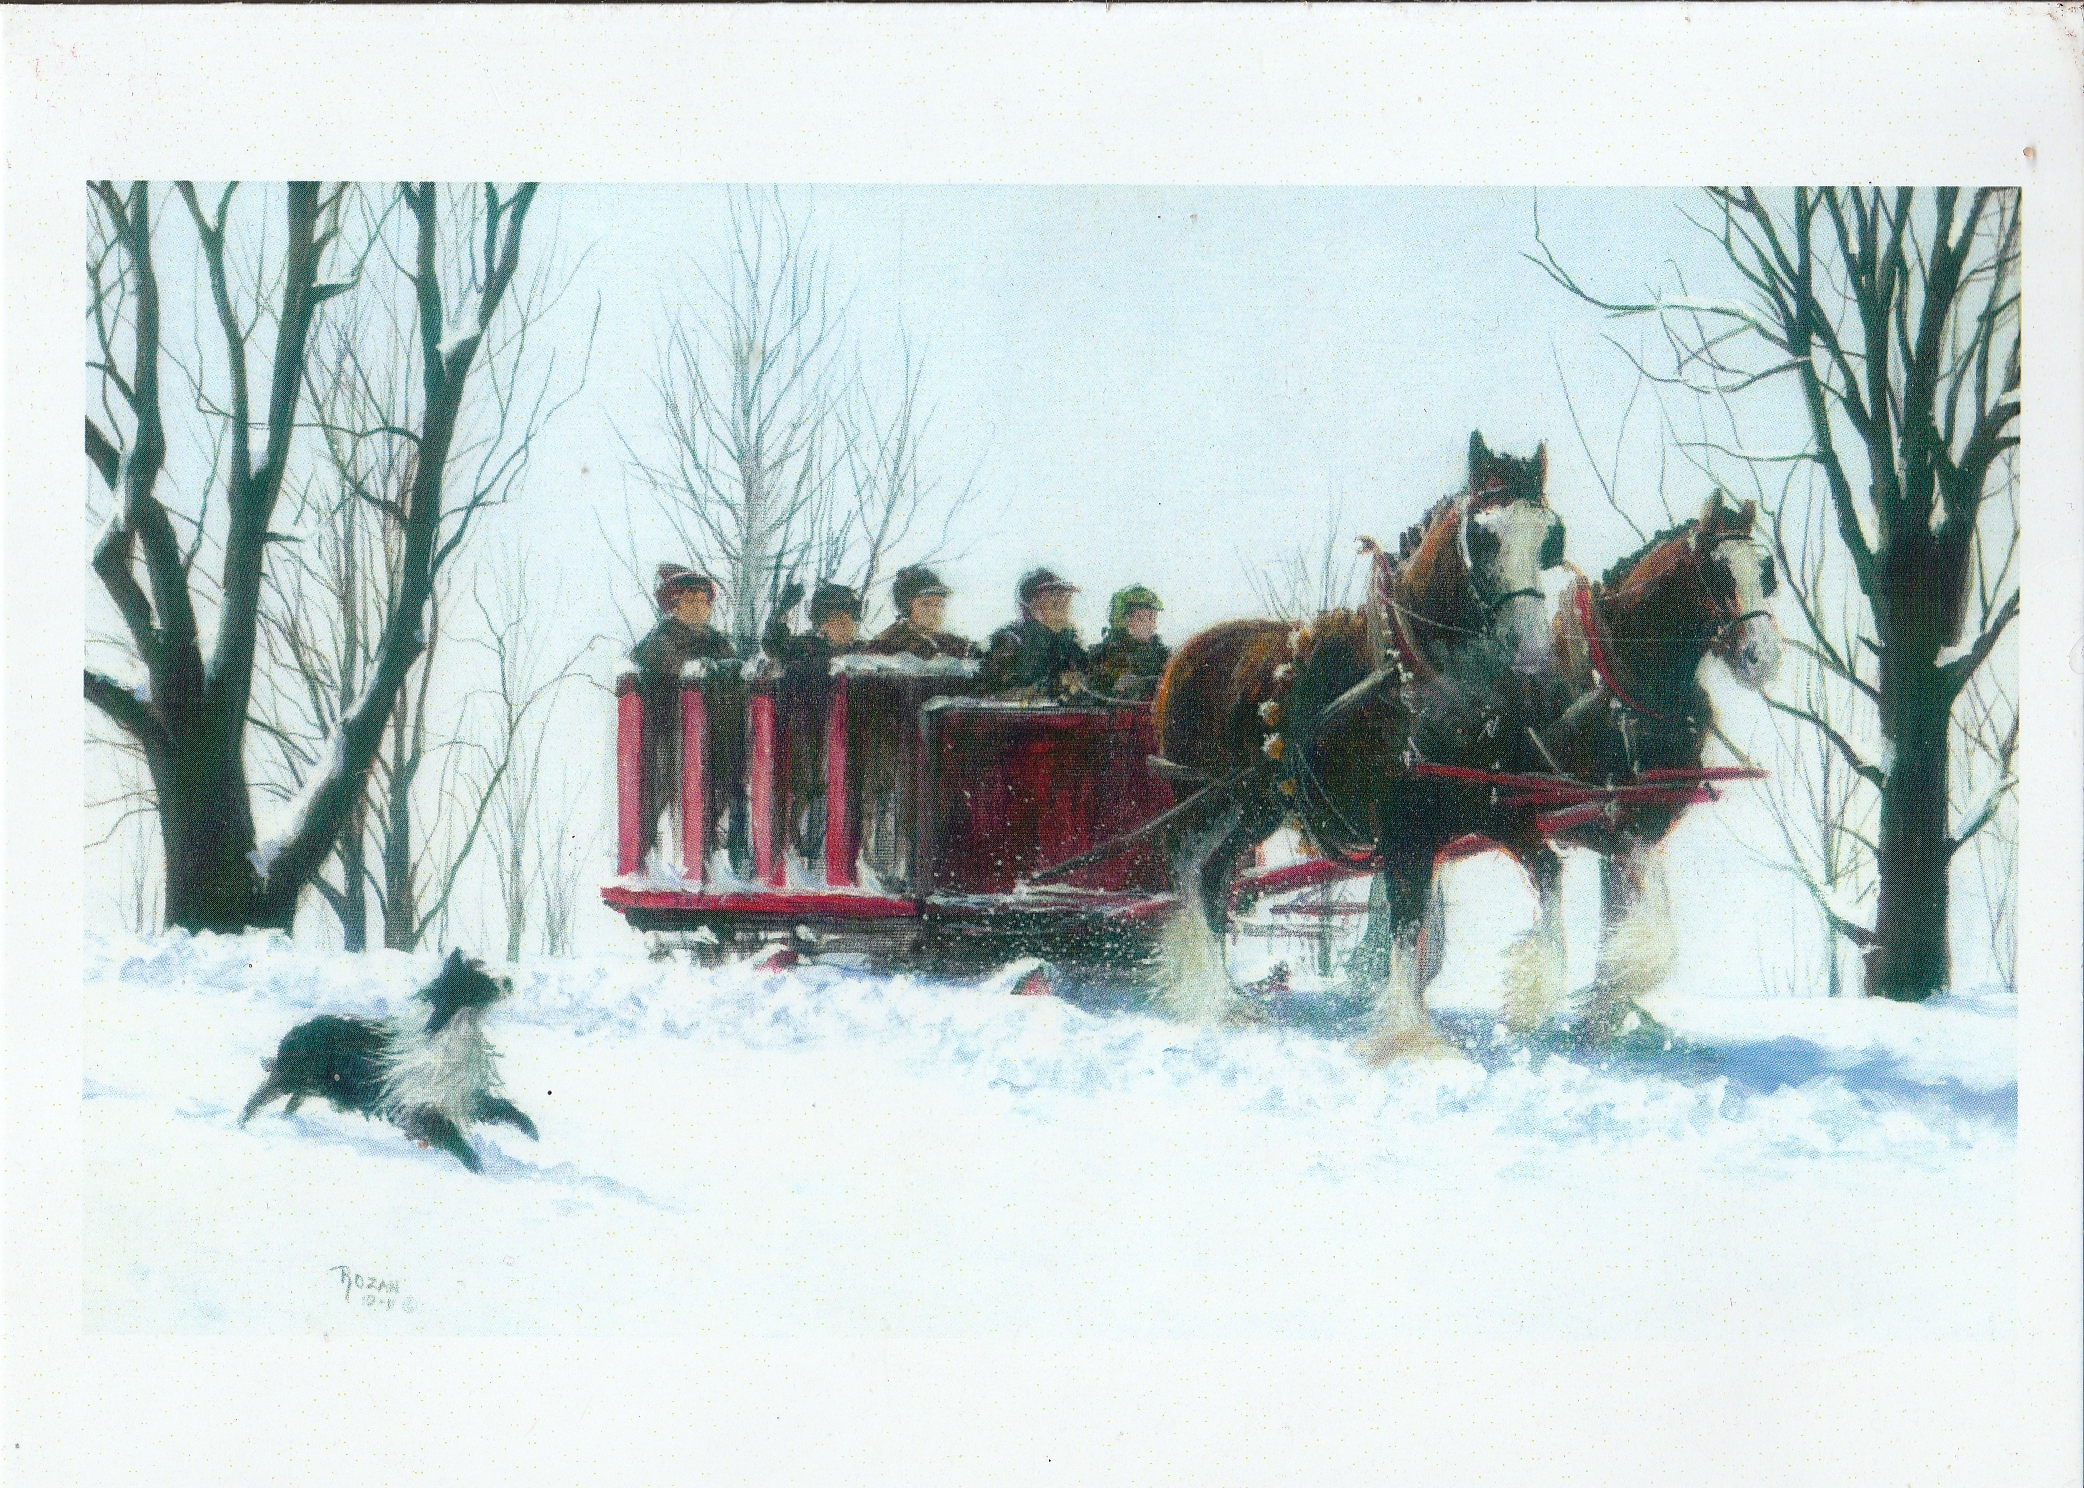 Early Morning Sleighride